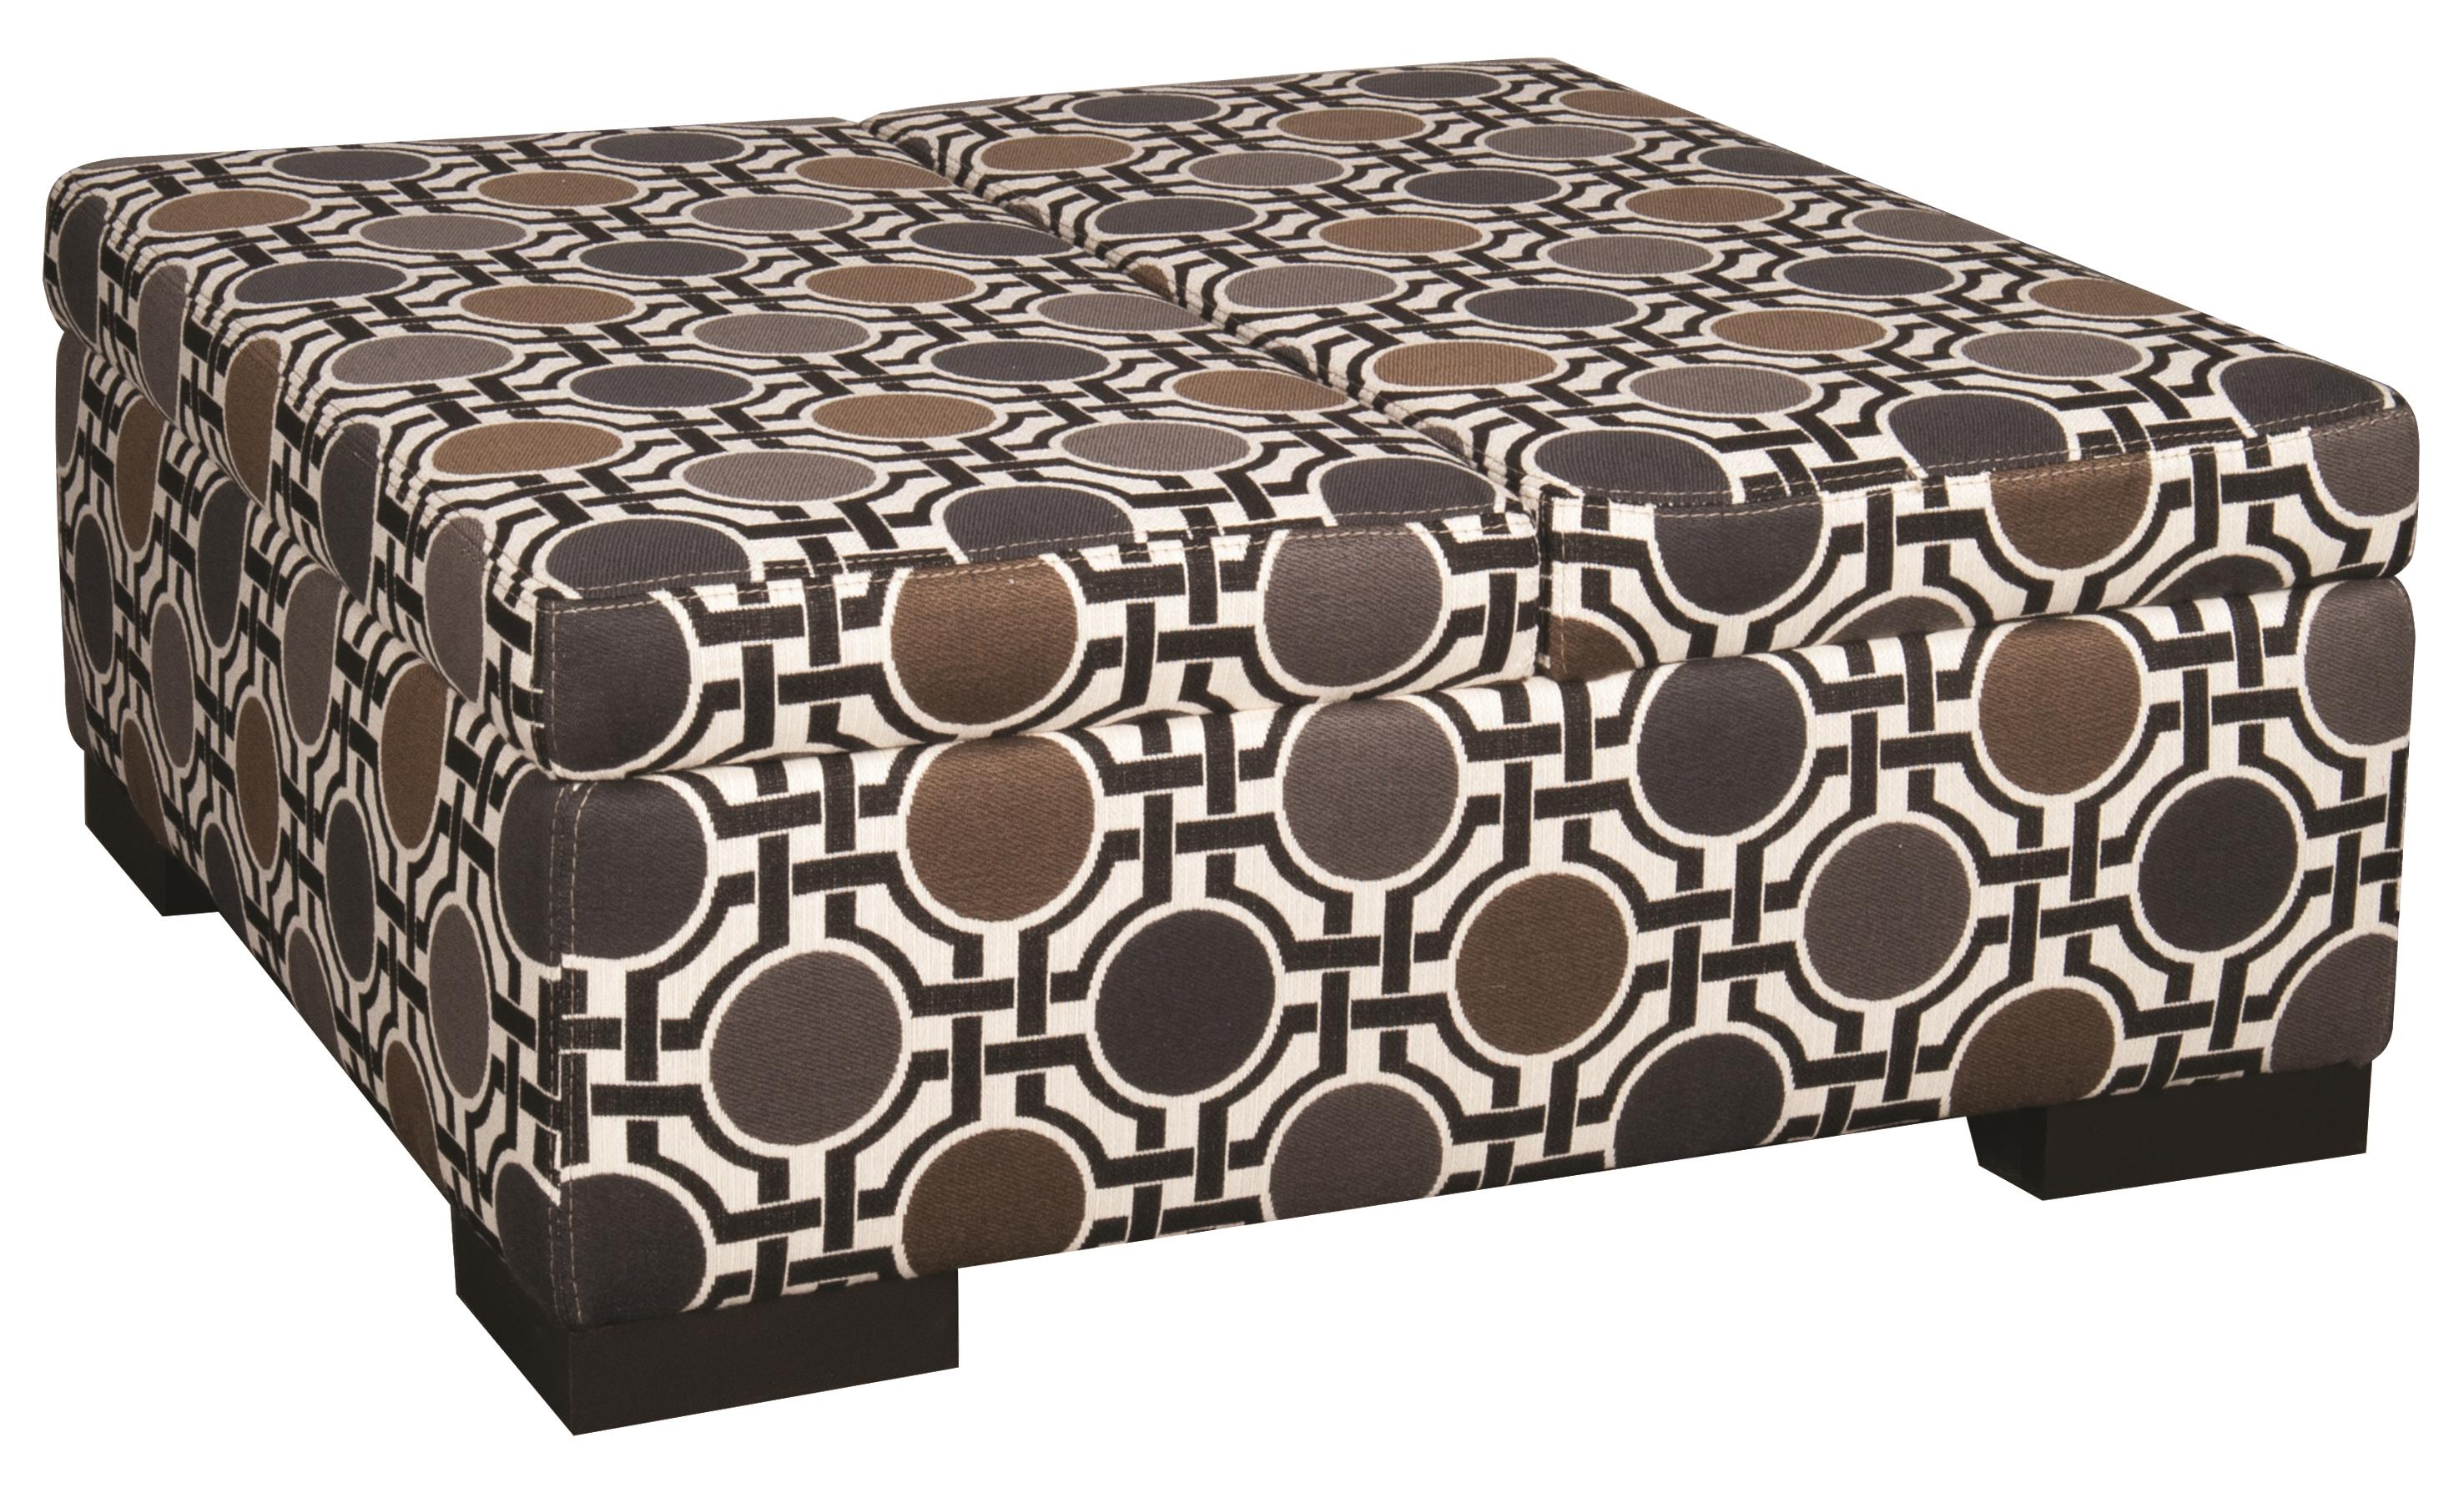 Santa Monica Karis Karis Double Storage Ottoman - Item Number: 953697499